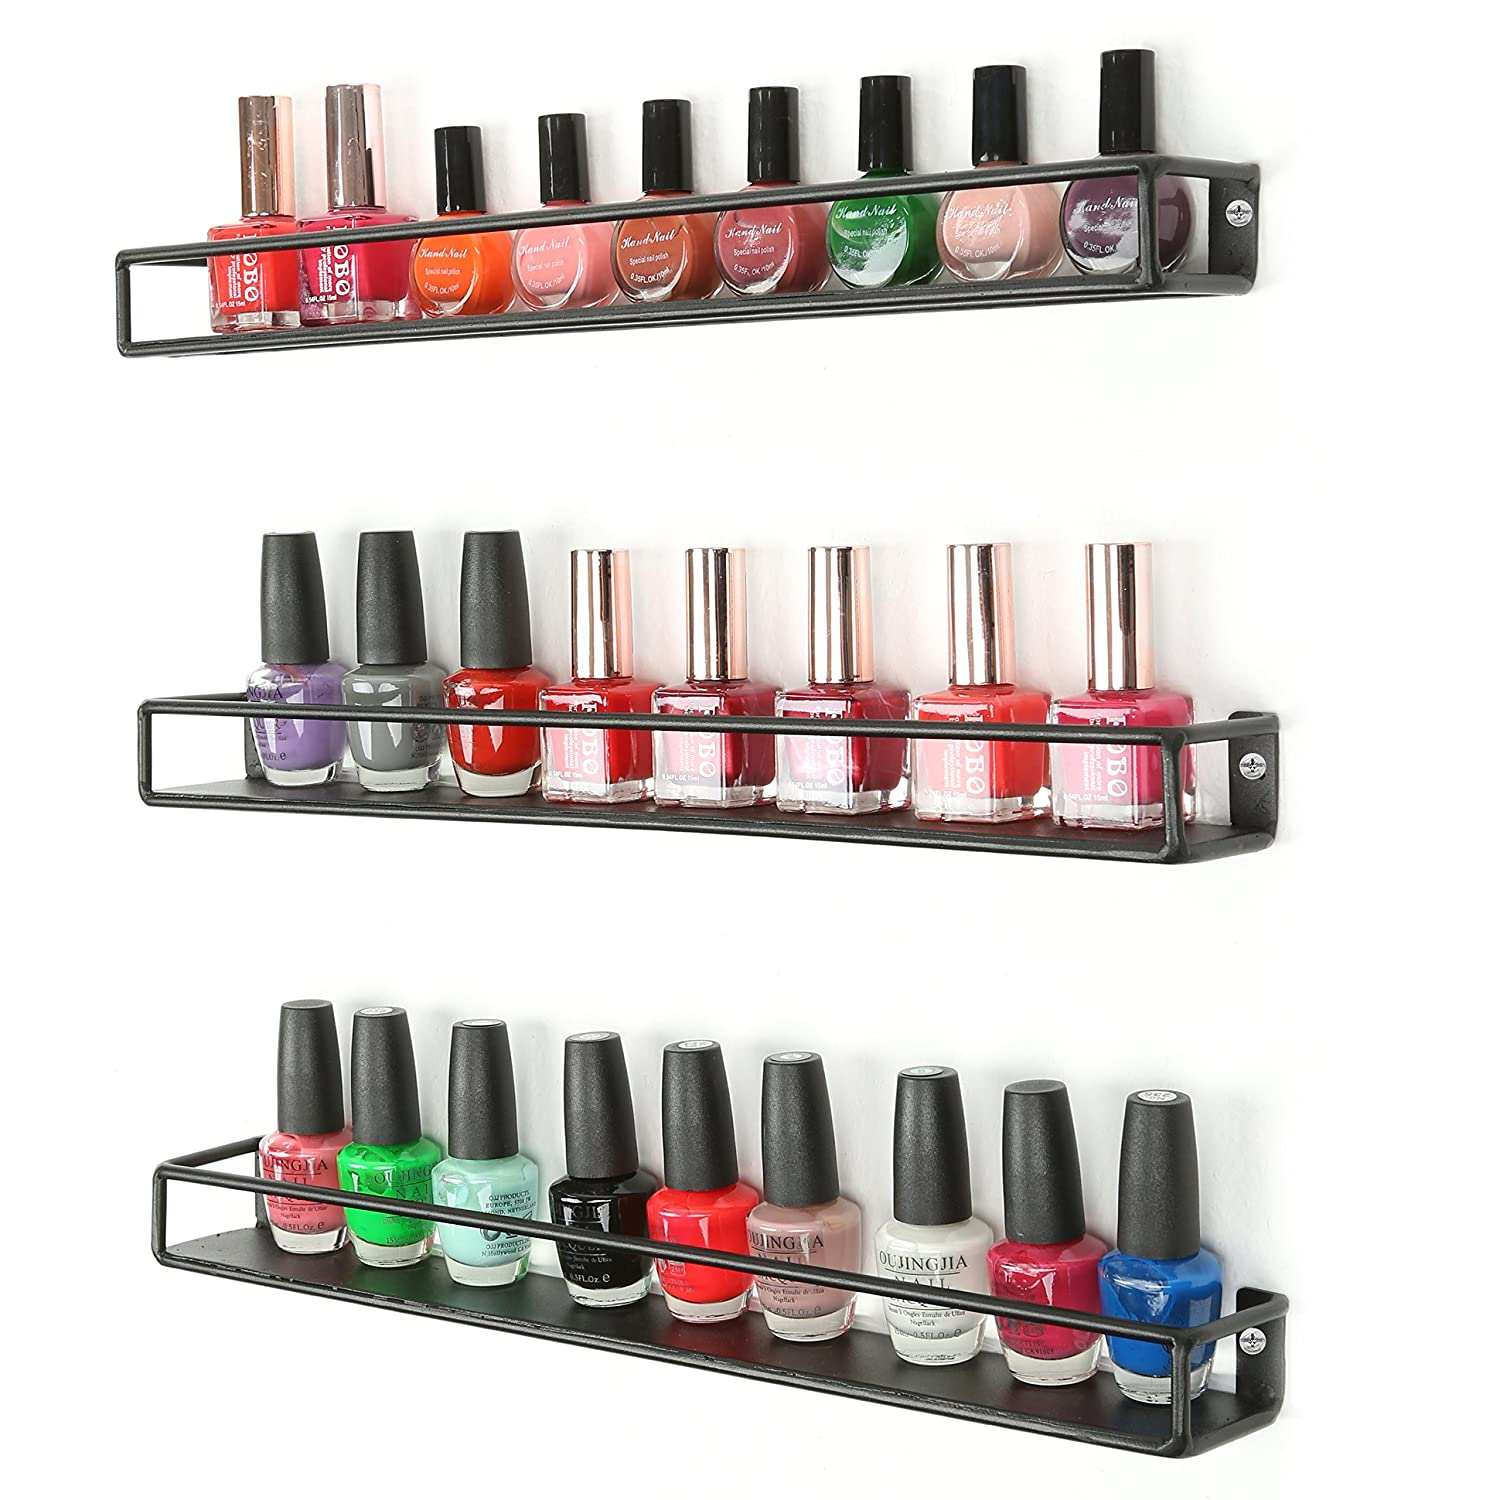 MyGift Set of 3 Black Metal Wall-Mounted Nail Polish & Essential Oils Display Shelves/Kitchen Spice Jars Rack BHBUKPPAZINH918